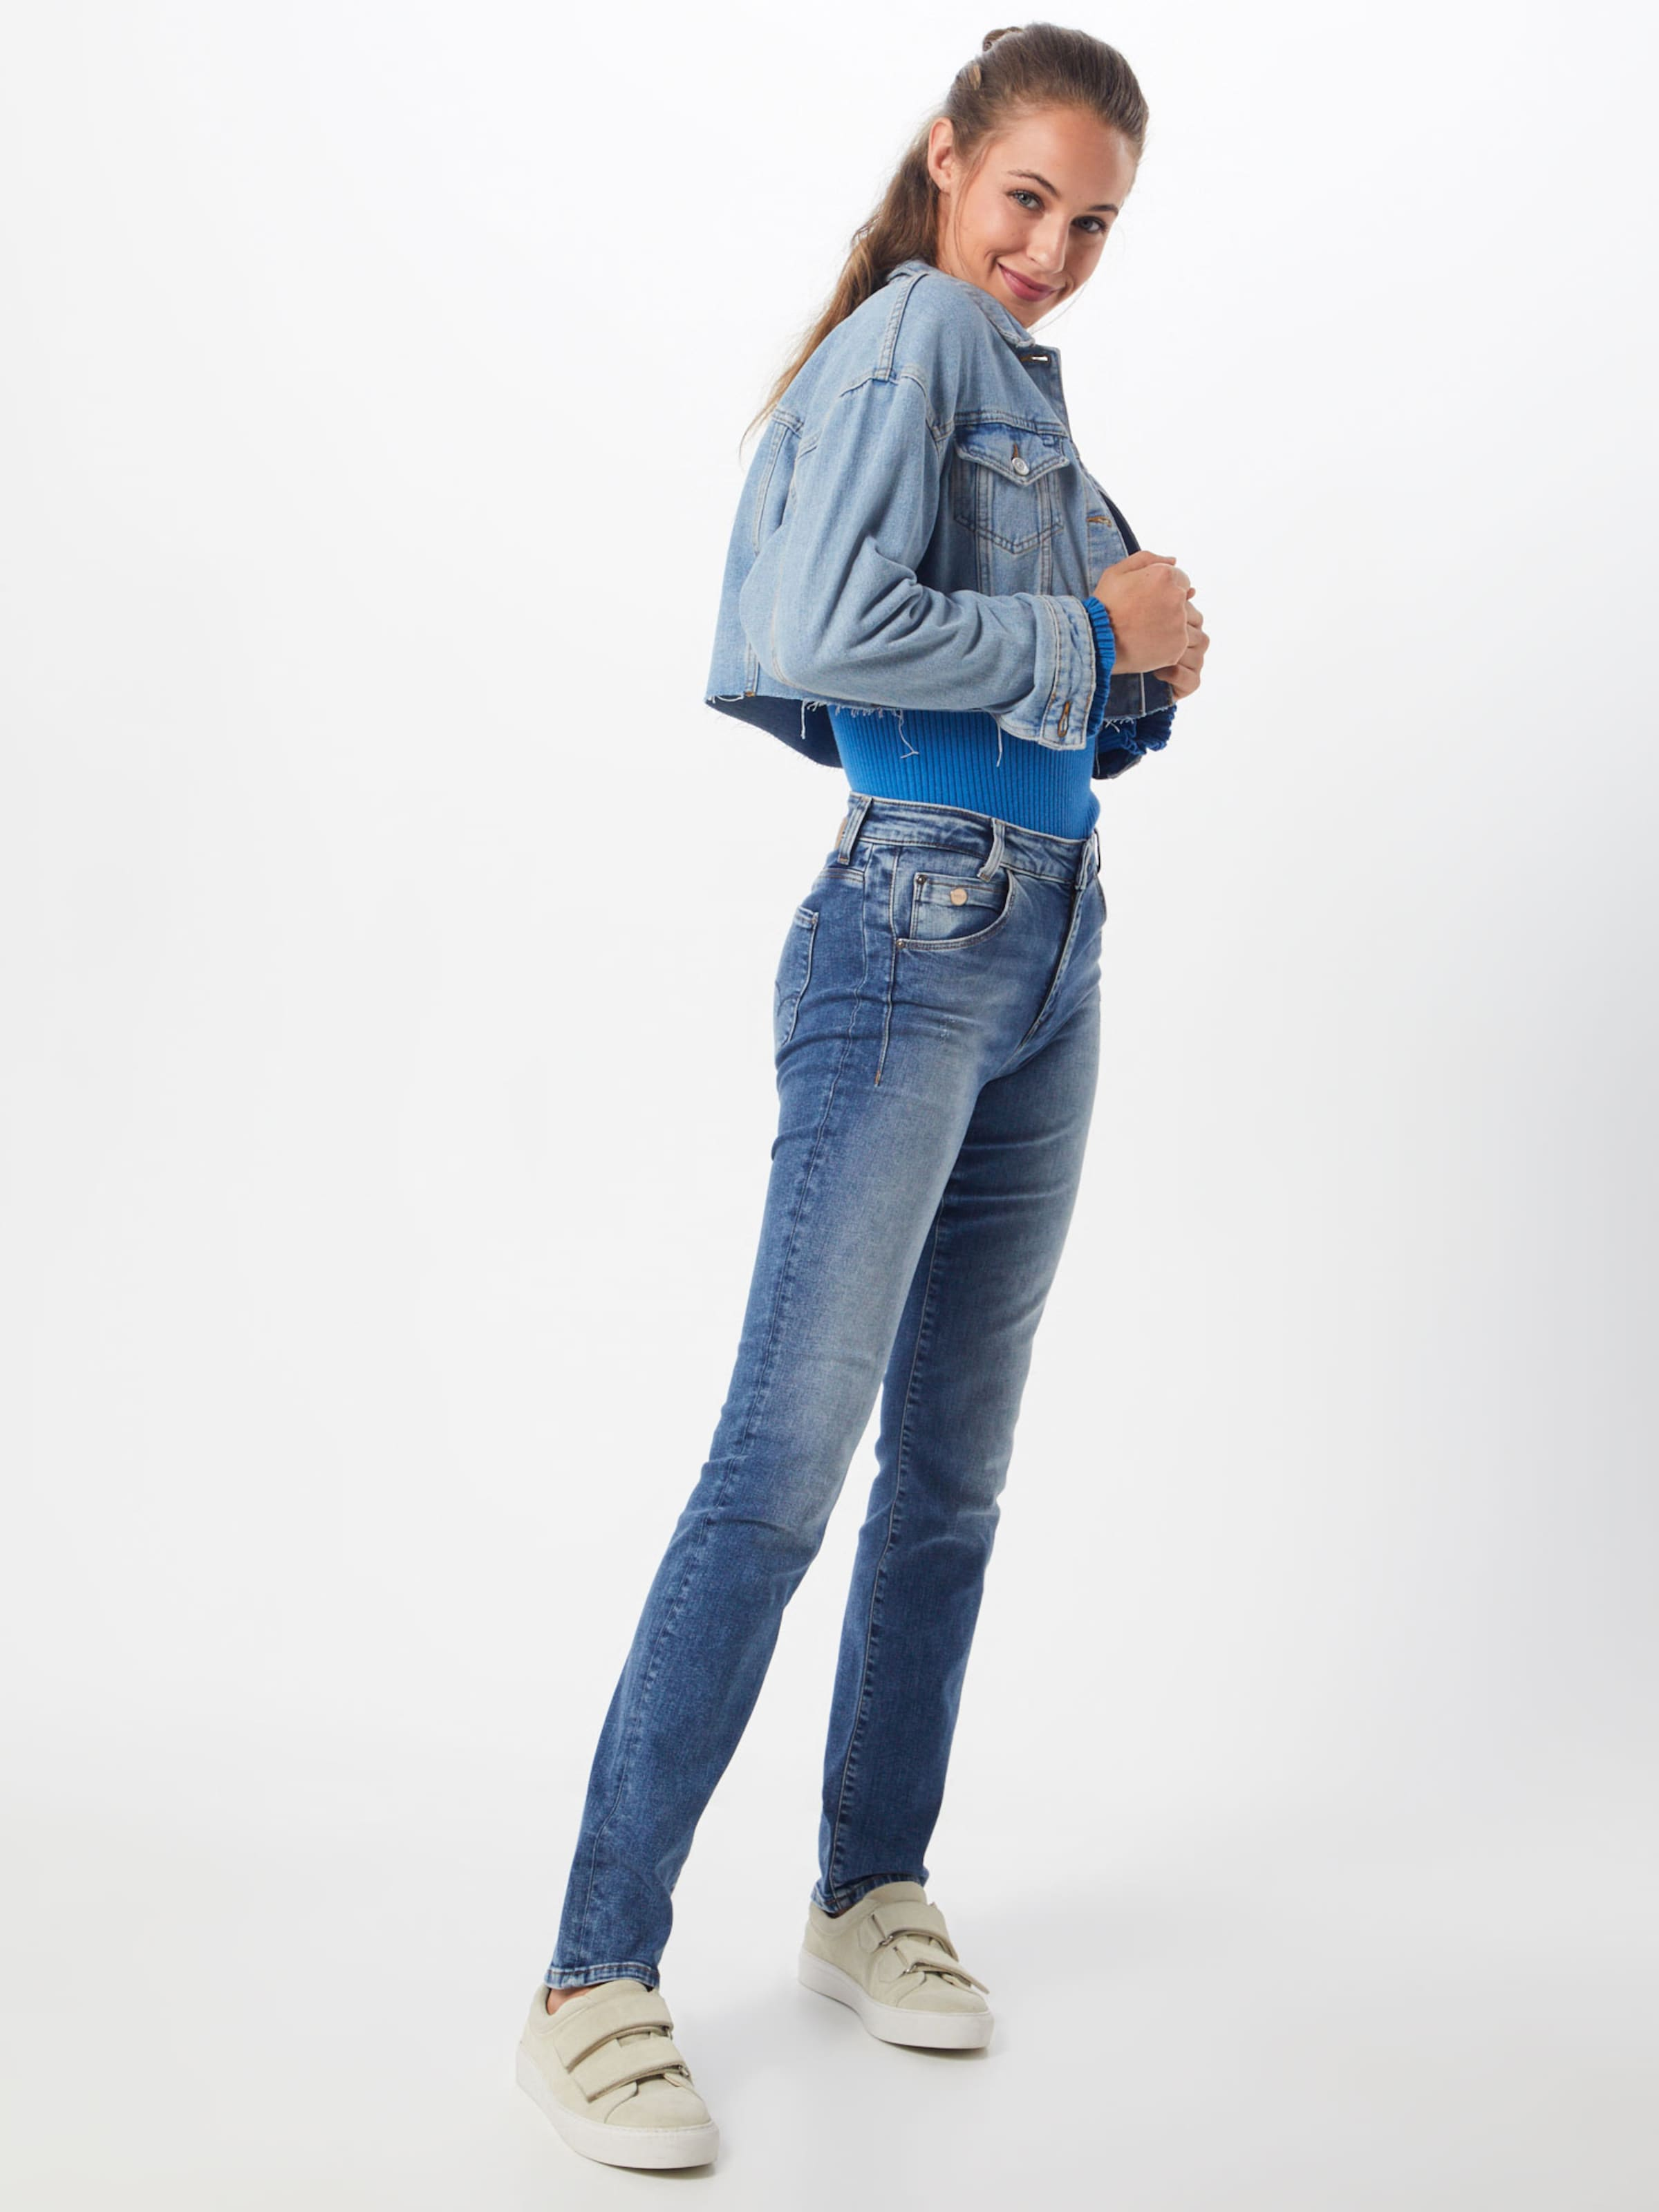 Jeans Mavi Denim Blue 'daria' In uJcK1T3lF5